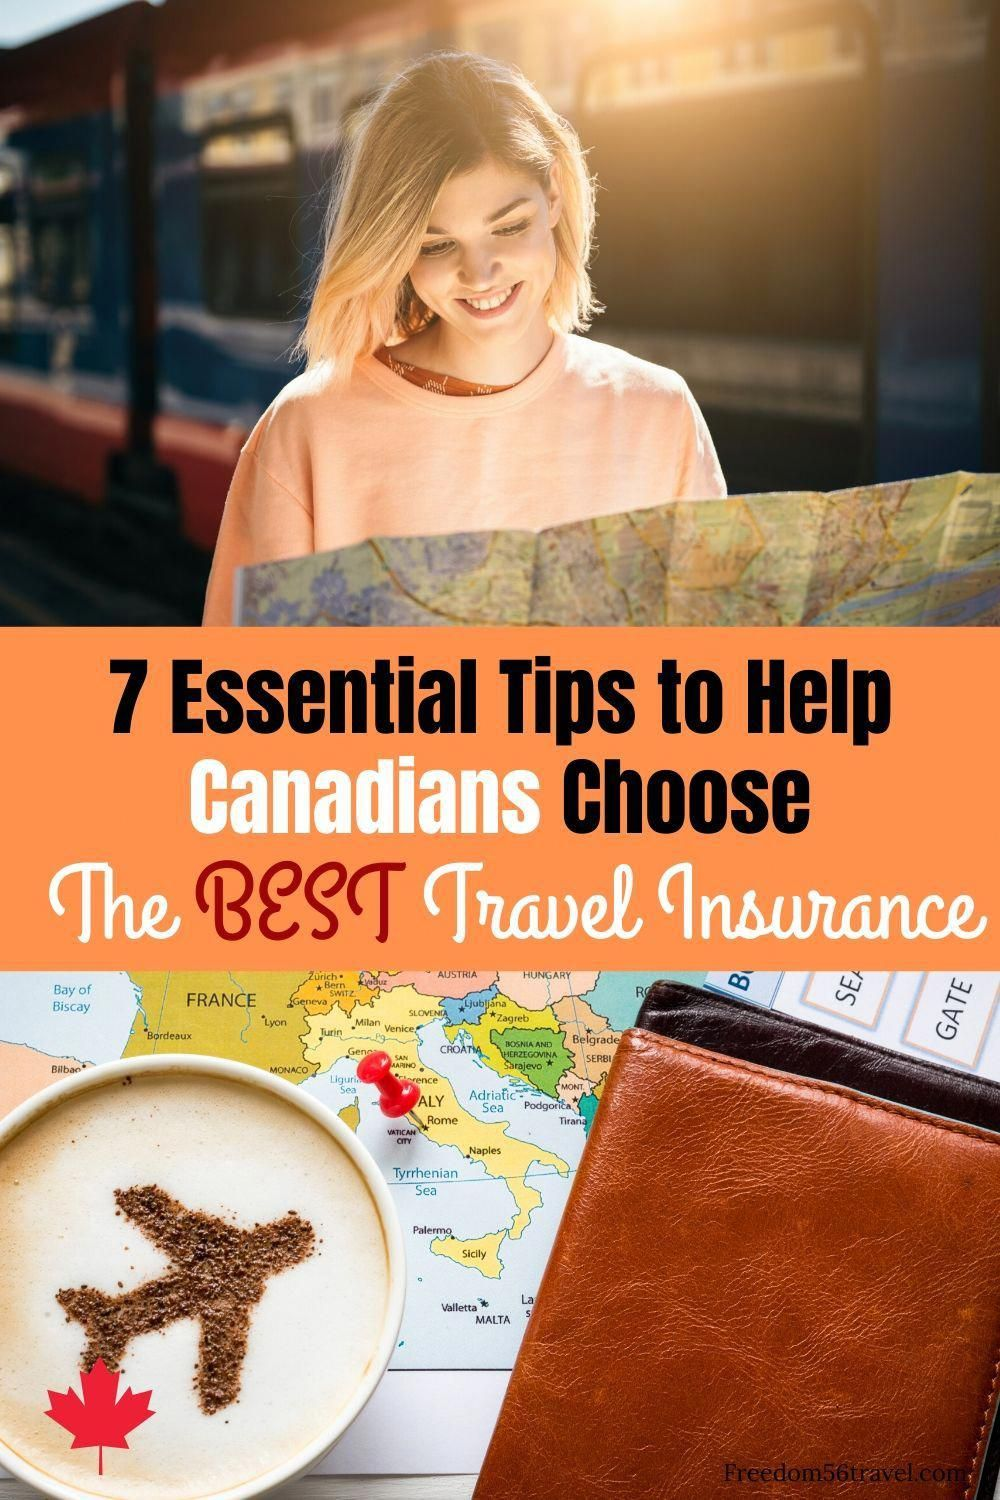 Reviews of the best travel medical insurance for Canadians ...